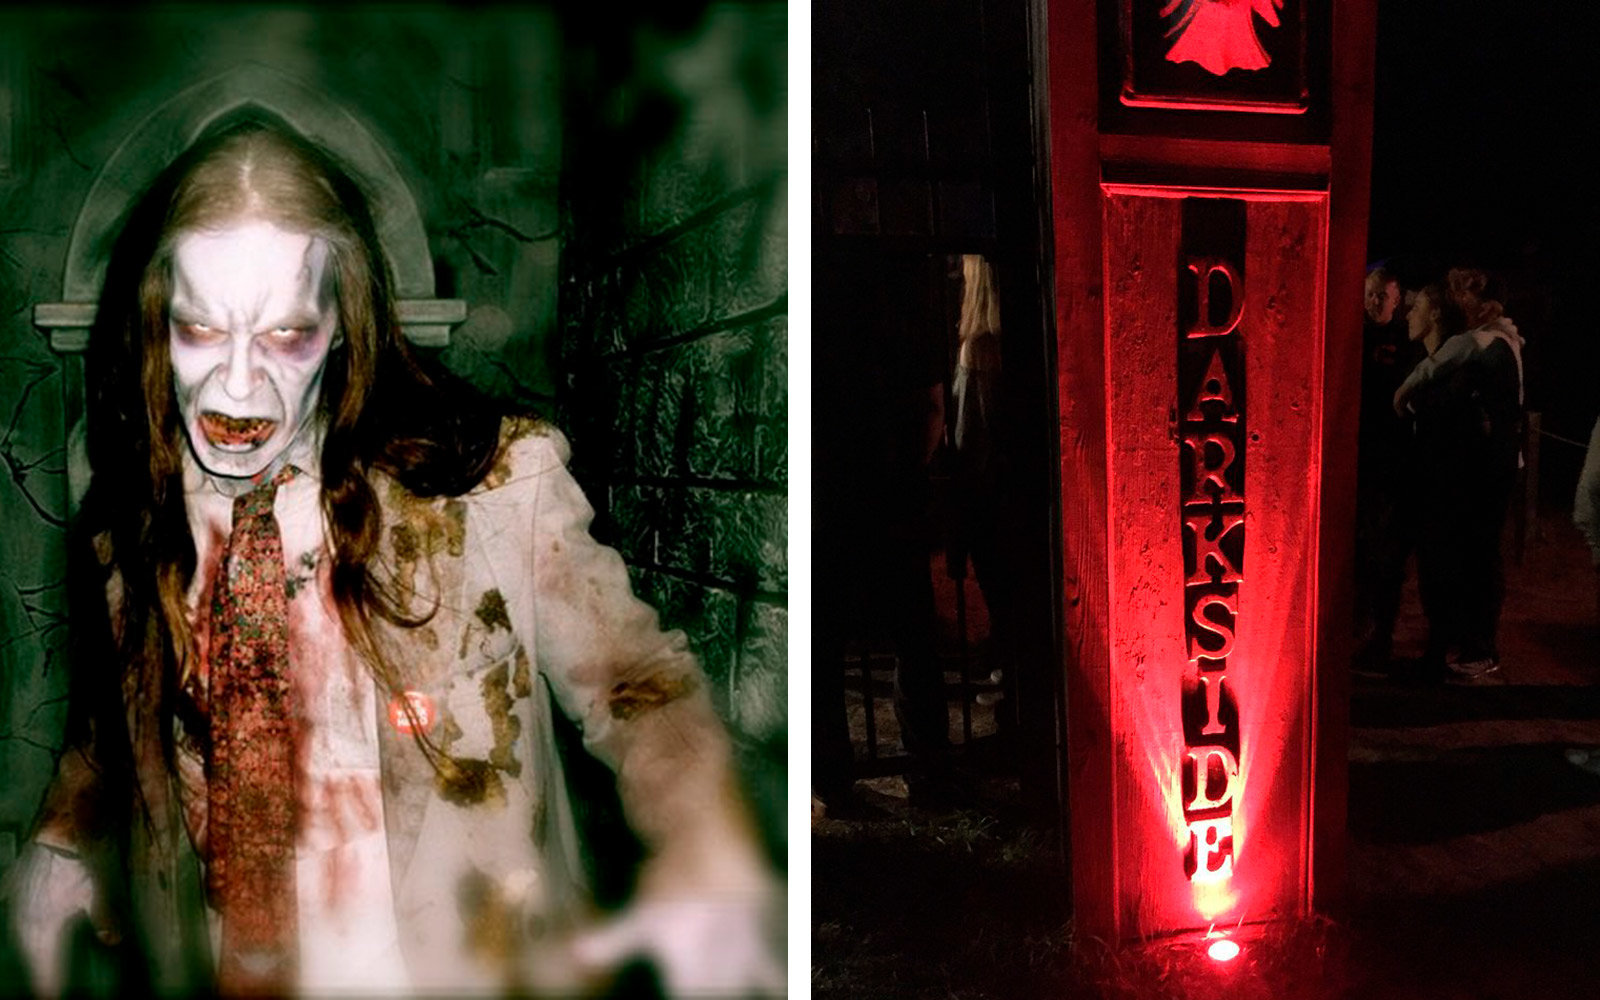 Darkside Haunted House, Wading River, New York